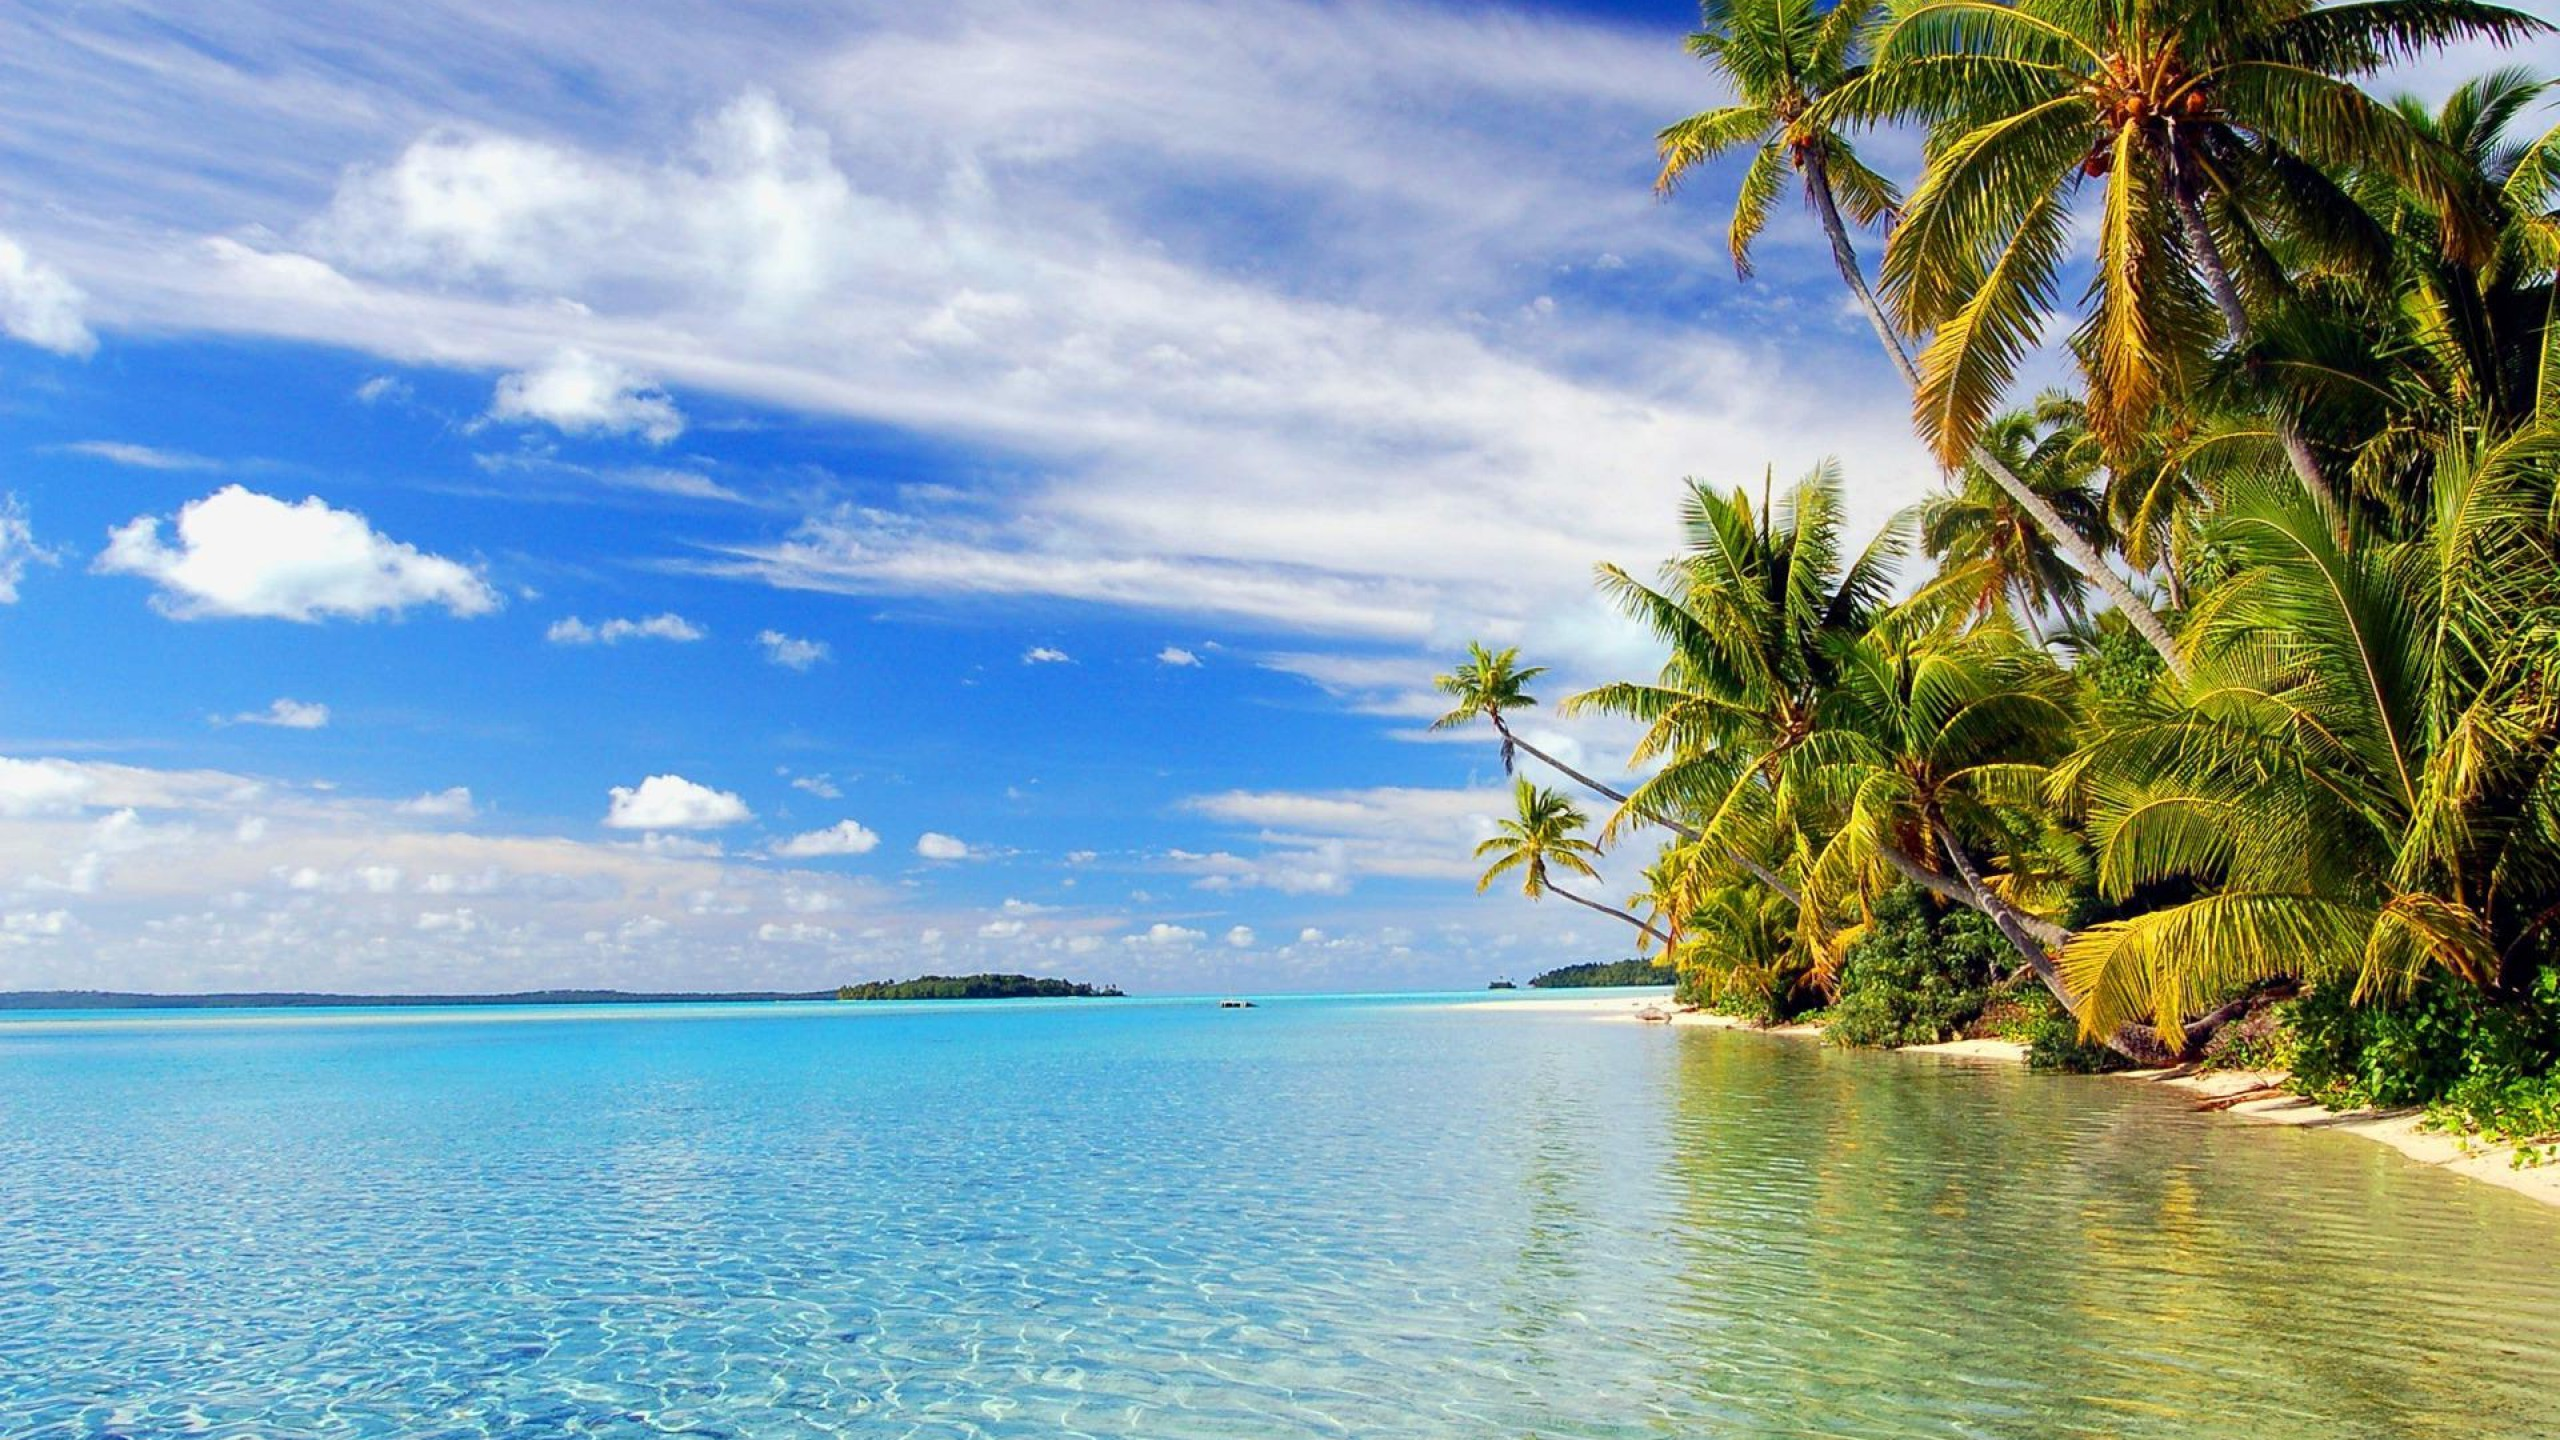 Tropical Beach Wallpapers   Resolution: px, Millie Ely